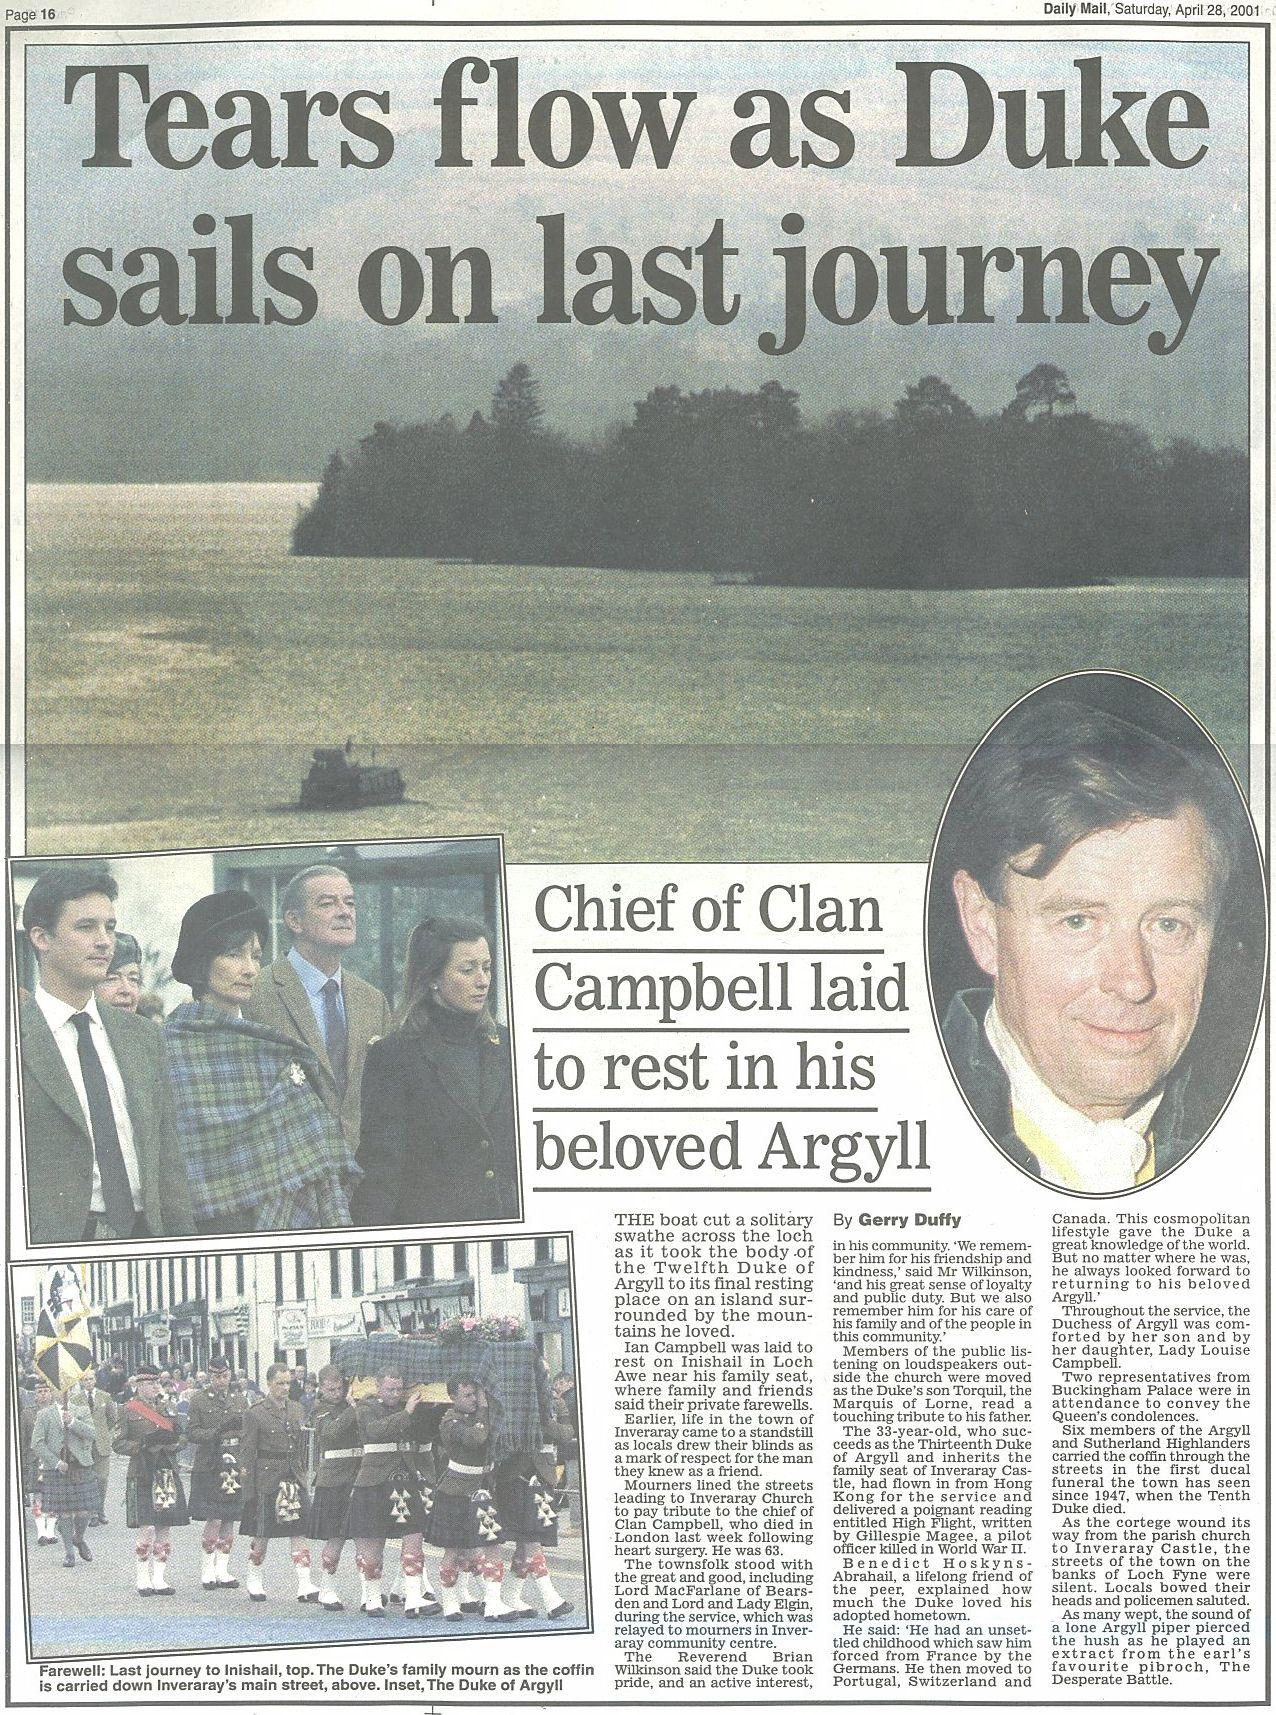 12th Duke of Argyll Daily Mail Obit 28 April 2001